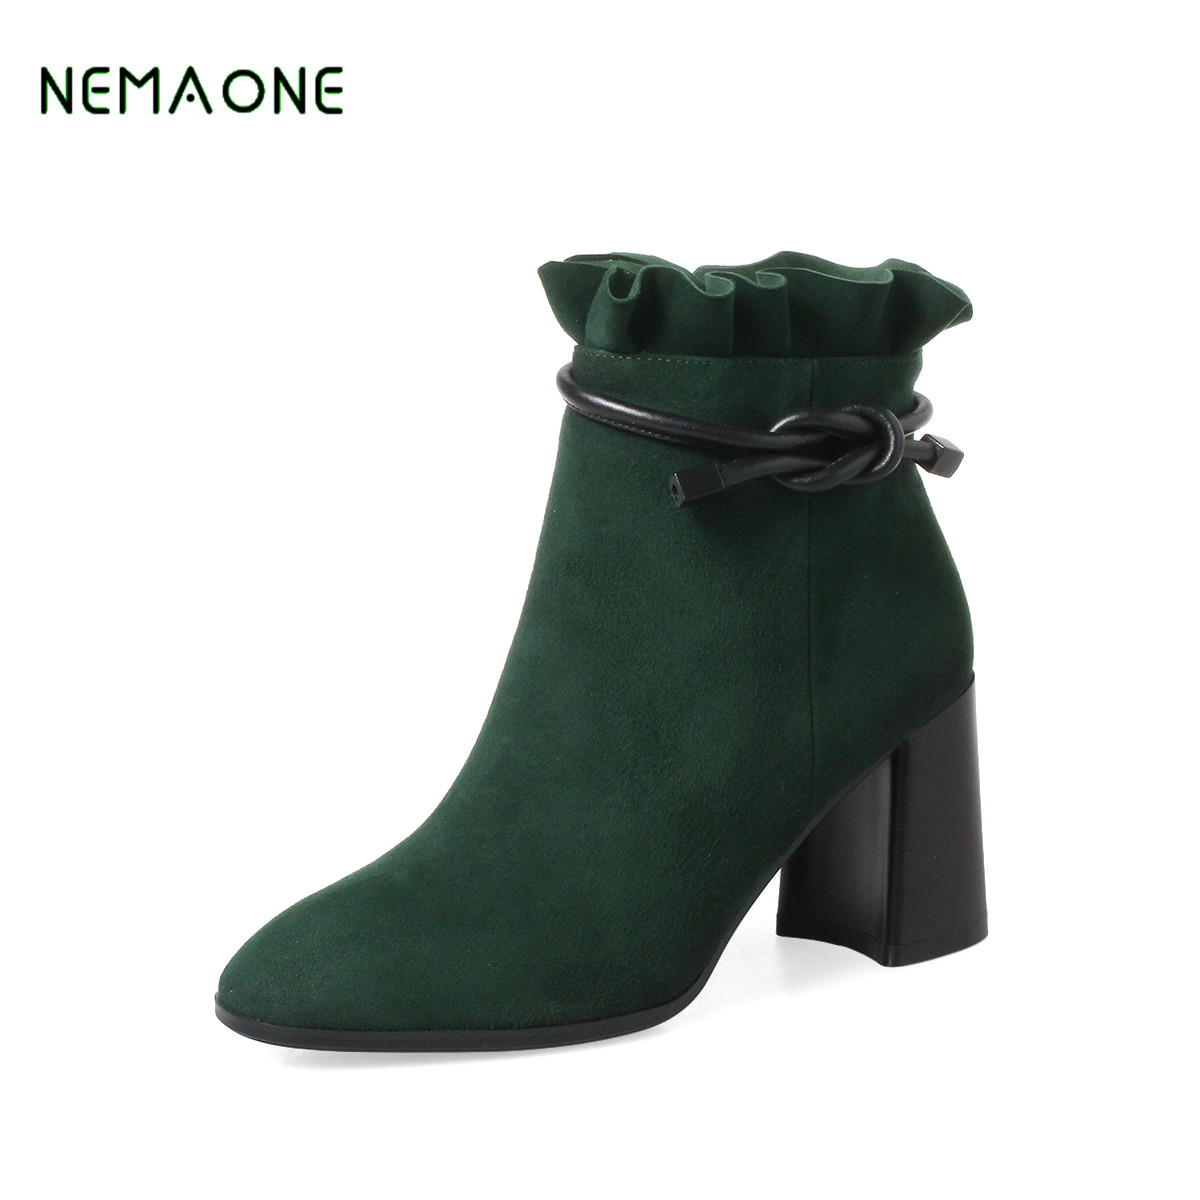 NEMAONE Women Ankle Boots Winter Genuine Nubuck Leather Black Thick Heel 12cm Super High Heels Platform Round toe Shoes stylish patterned flip open glow in the dark pu case w holder card slot for iphone 5 5s 5c page 8